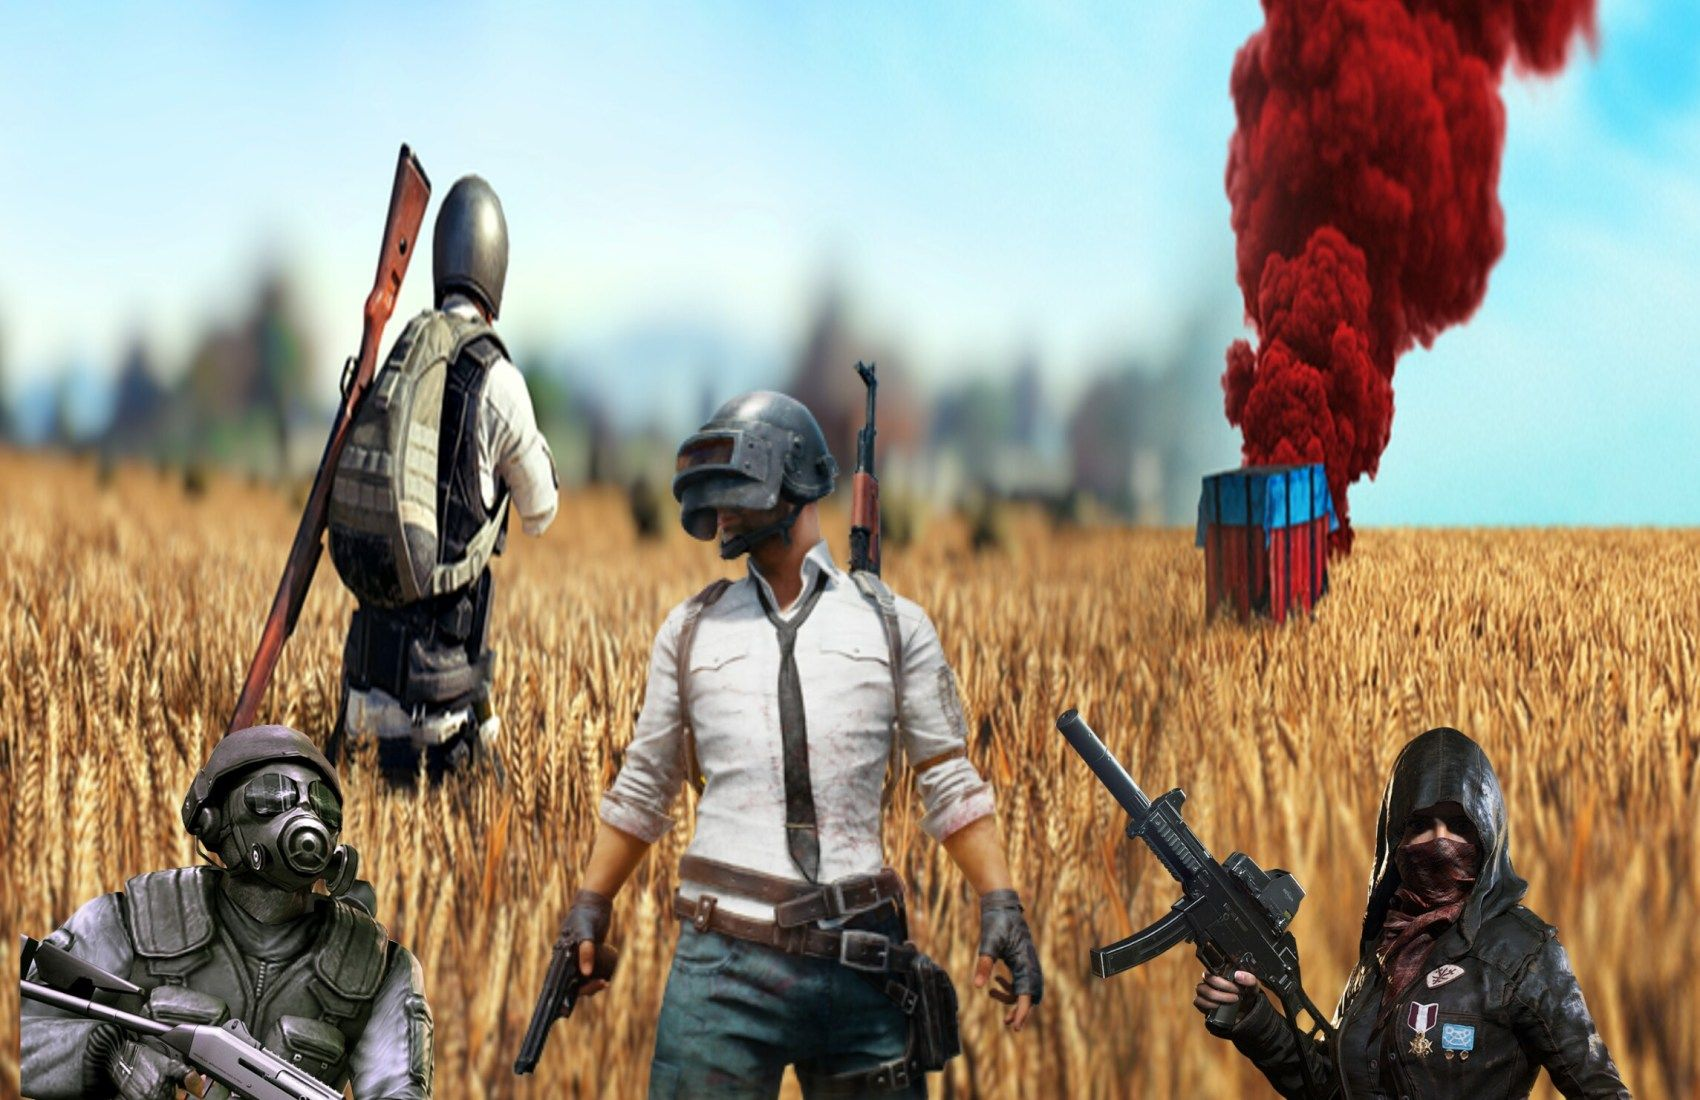 Playerunknown S Battlegrounds Pubg 4k Wallpapers Photos Images Pics Full Hd For Whatsapp Status Pinteres Photo Image Game Wallpaper Iphone Hd Phone Wallpapers